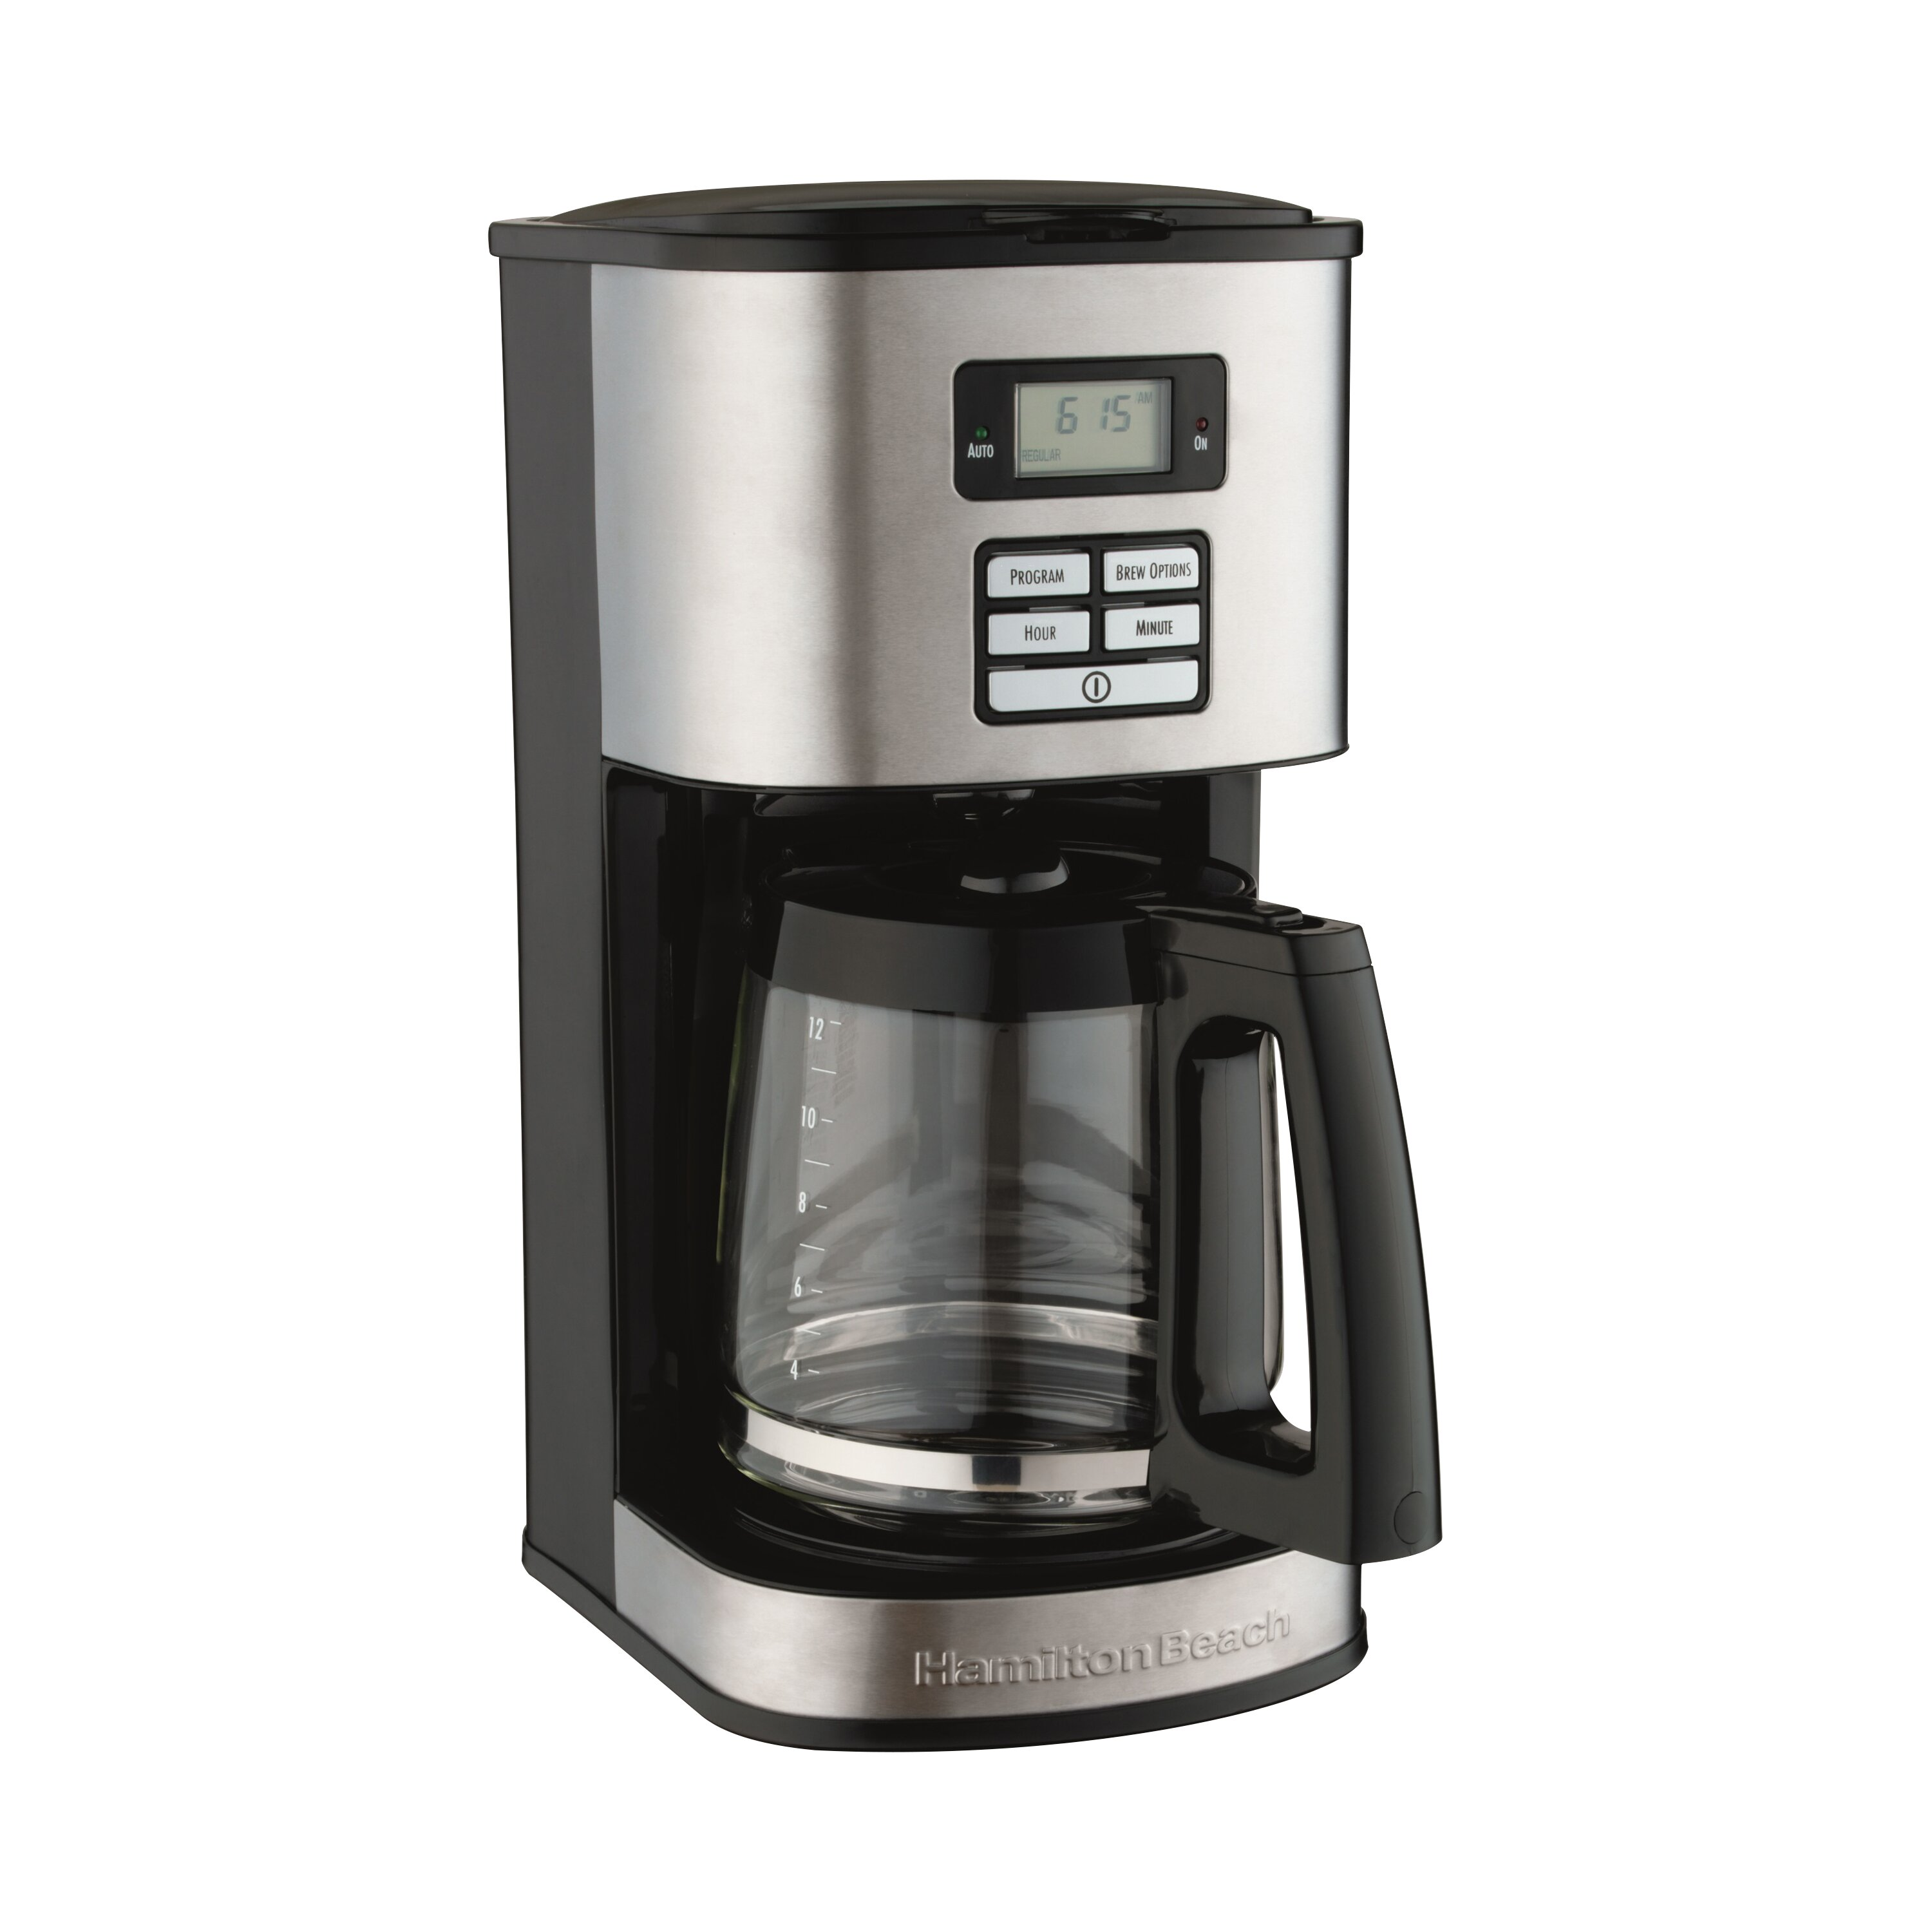 Hamilton beach 12 cup stainless steel coffee maker for Apartment size coffee maker